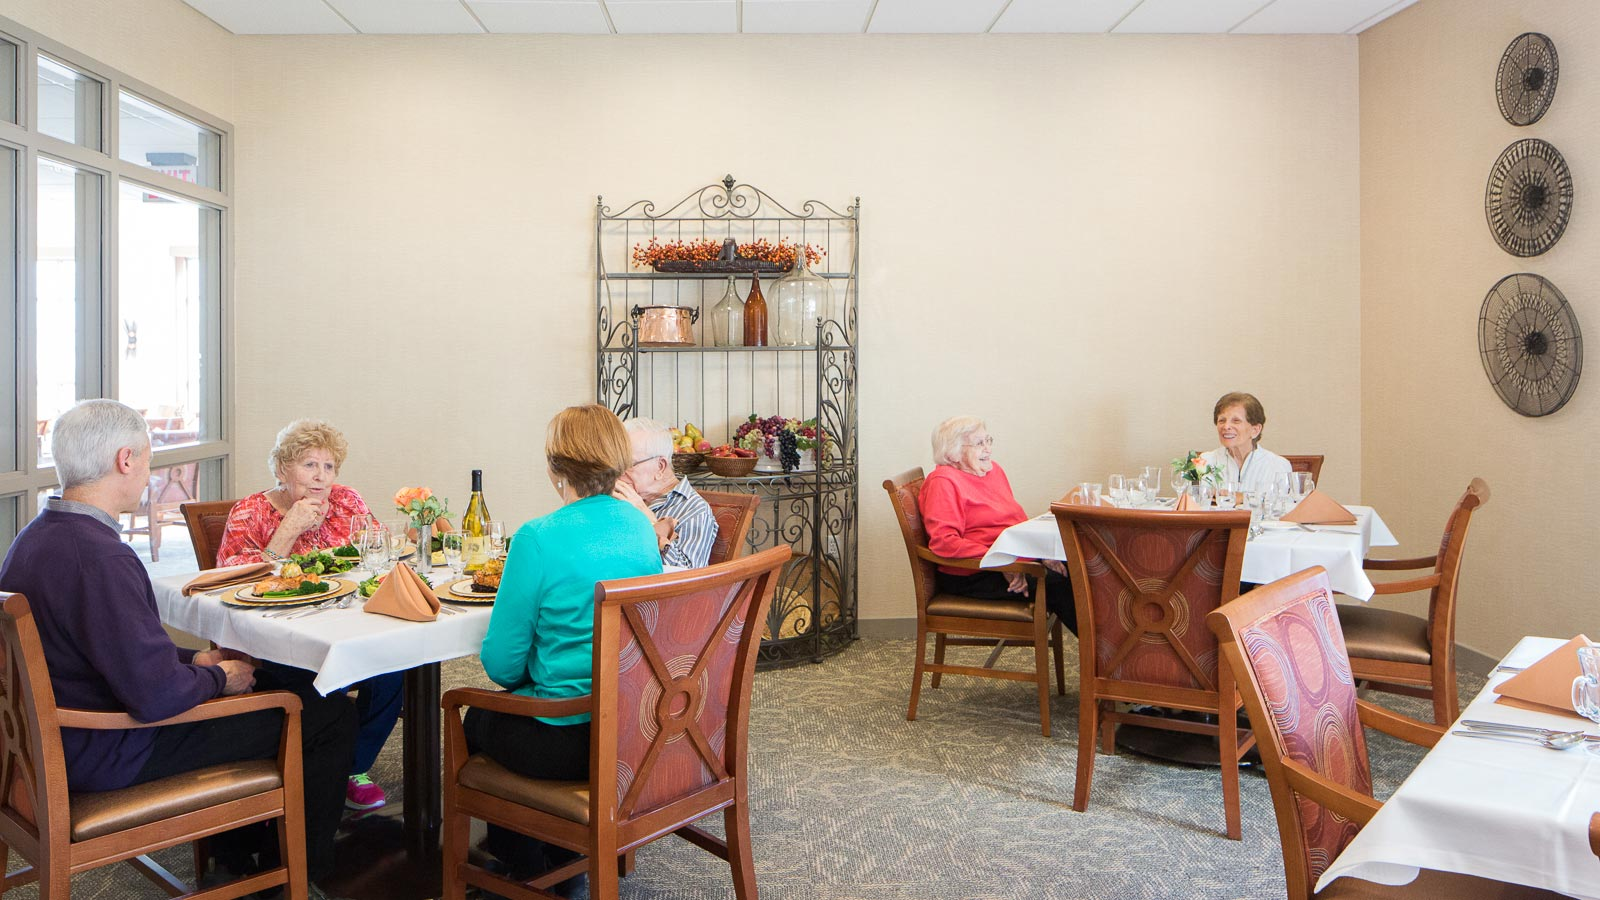 Gather With Your Friends And Neighbors In Our Dining Room To Celebrate Friendship And Delicious Dishes.